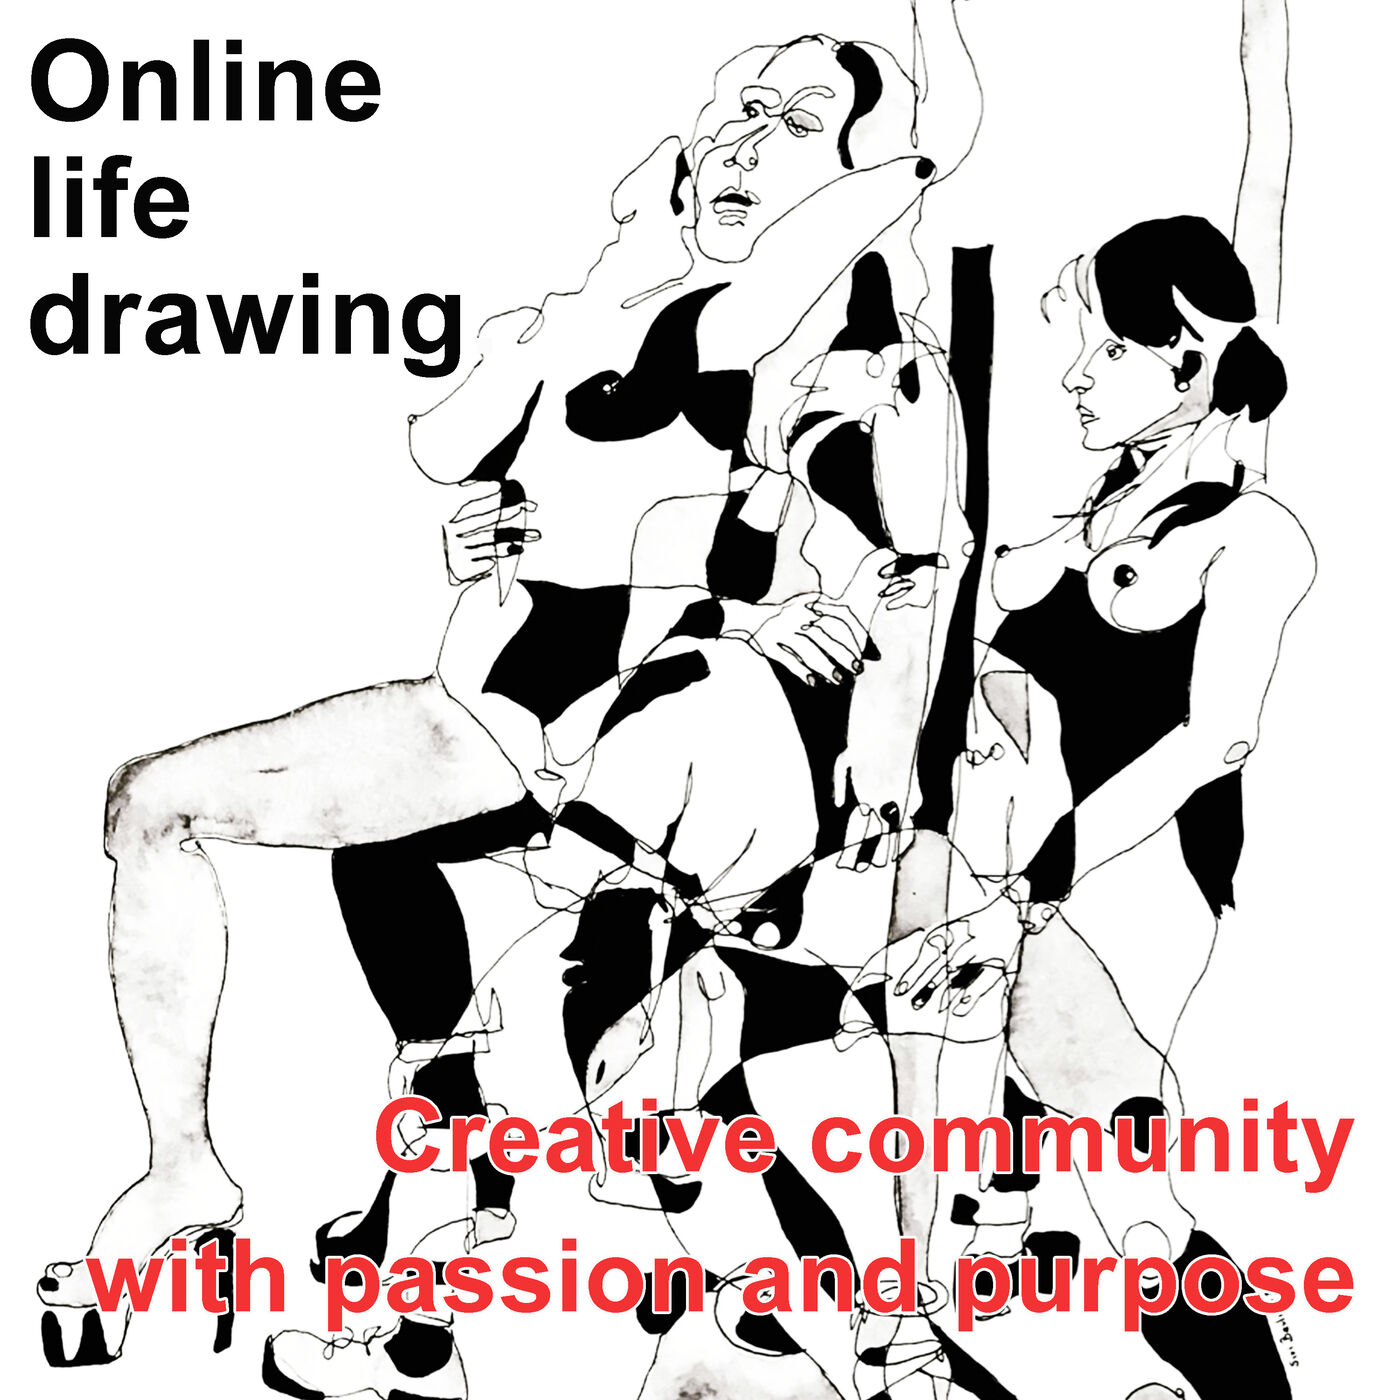 Online life drawing. Creative community with passion and purpose.